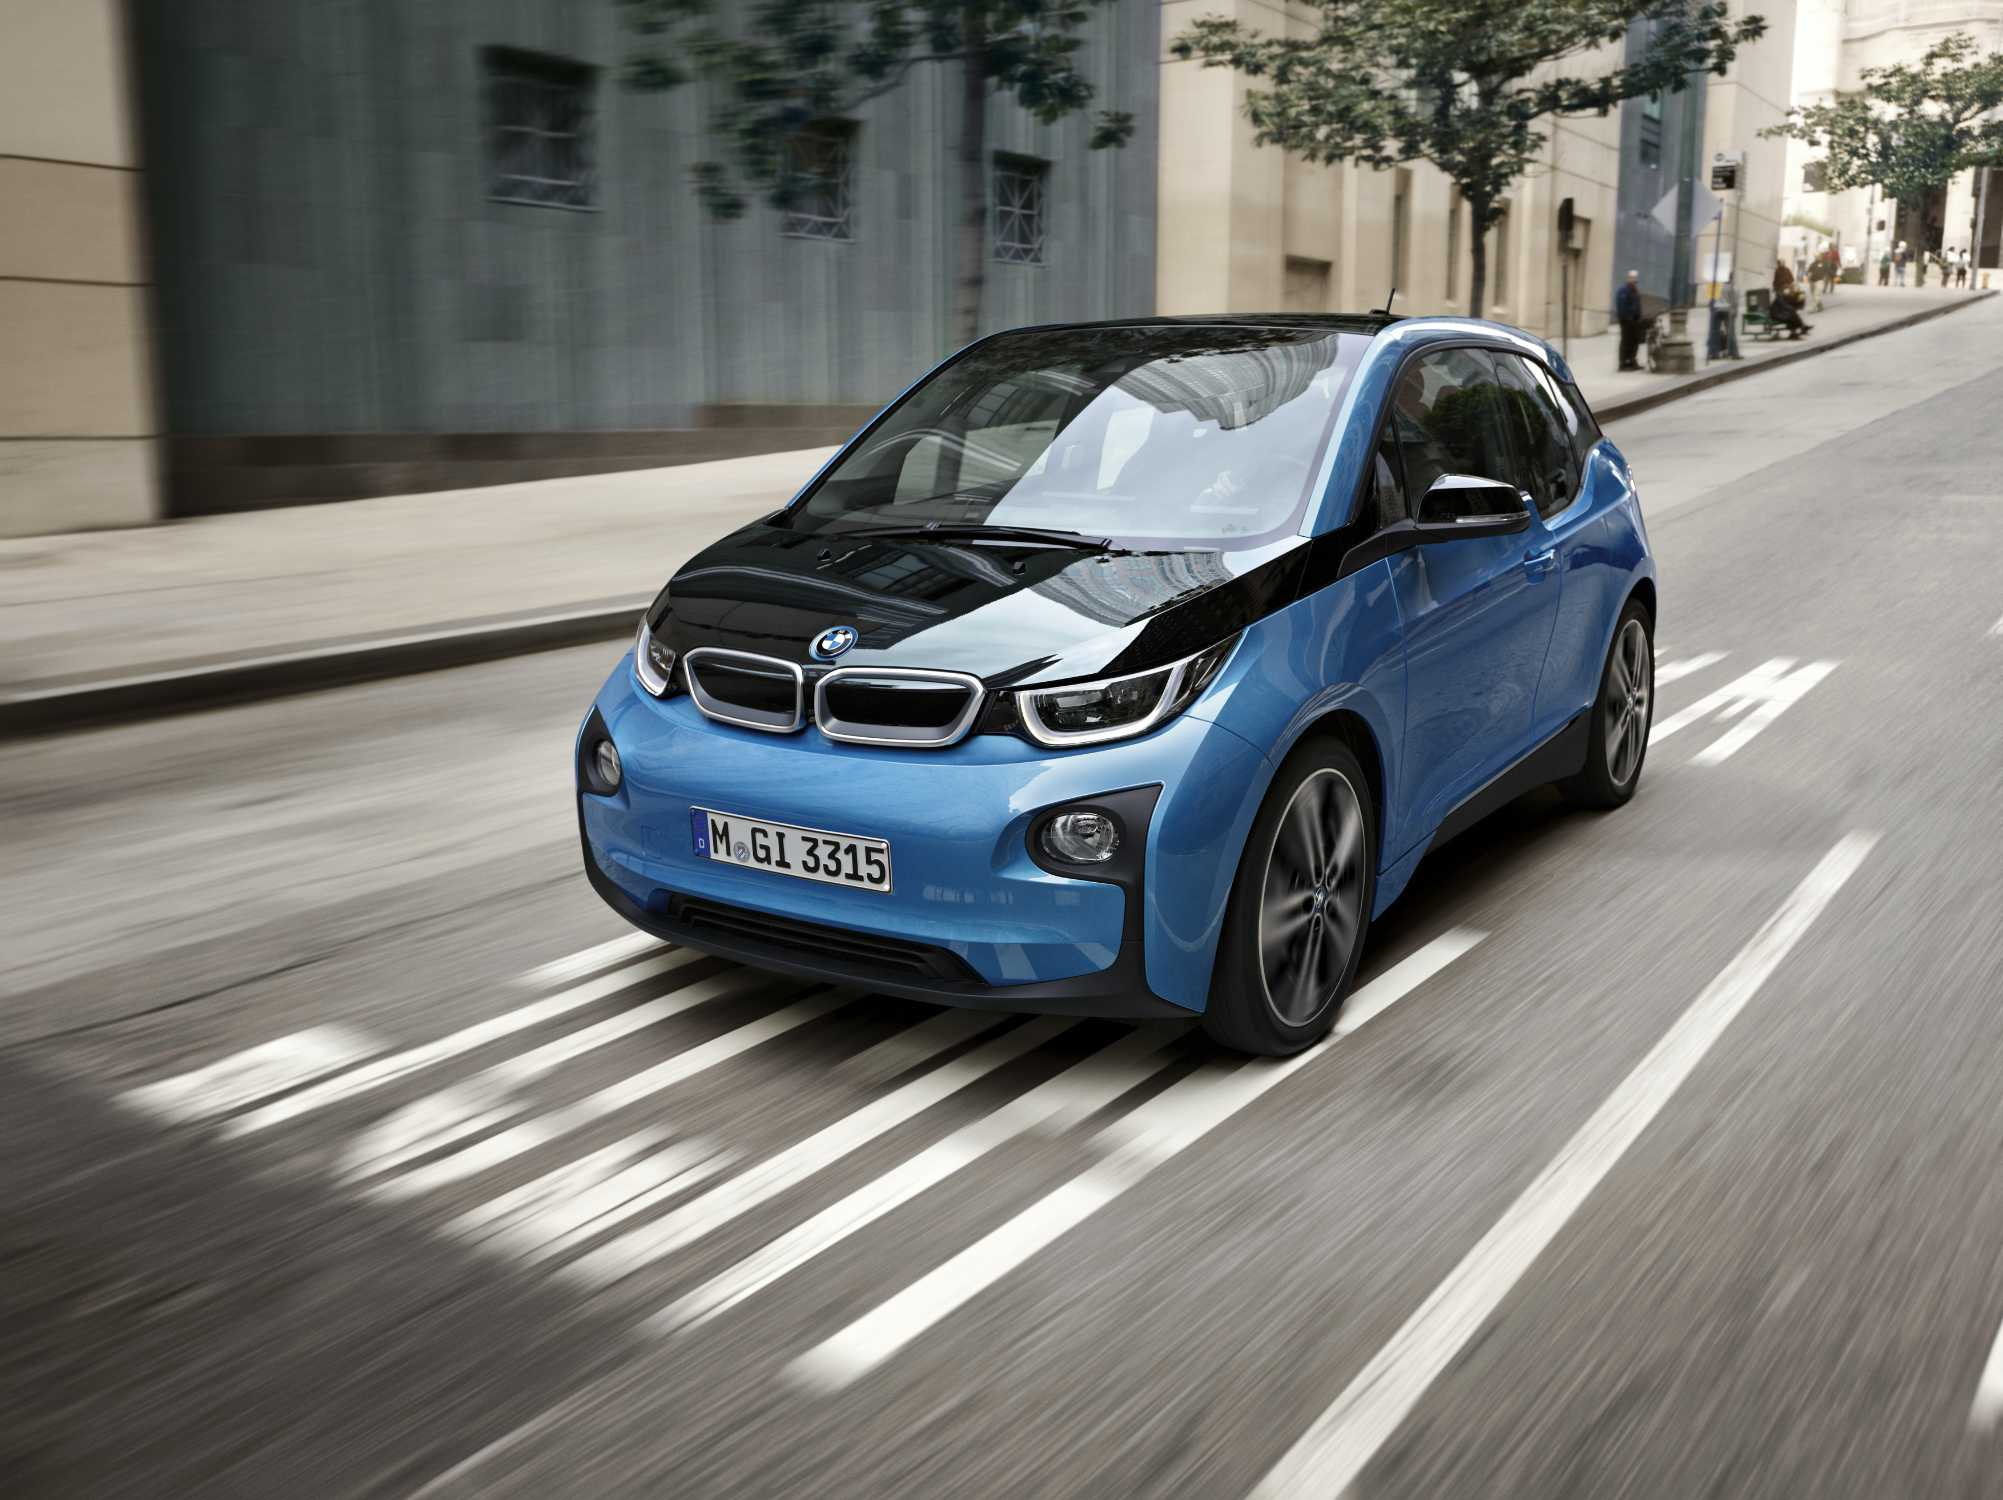 bmw-aims-to-sale-100000-electric-car-in-2017